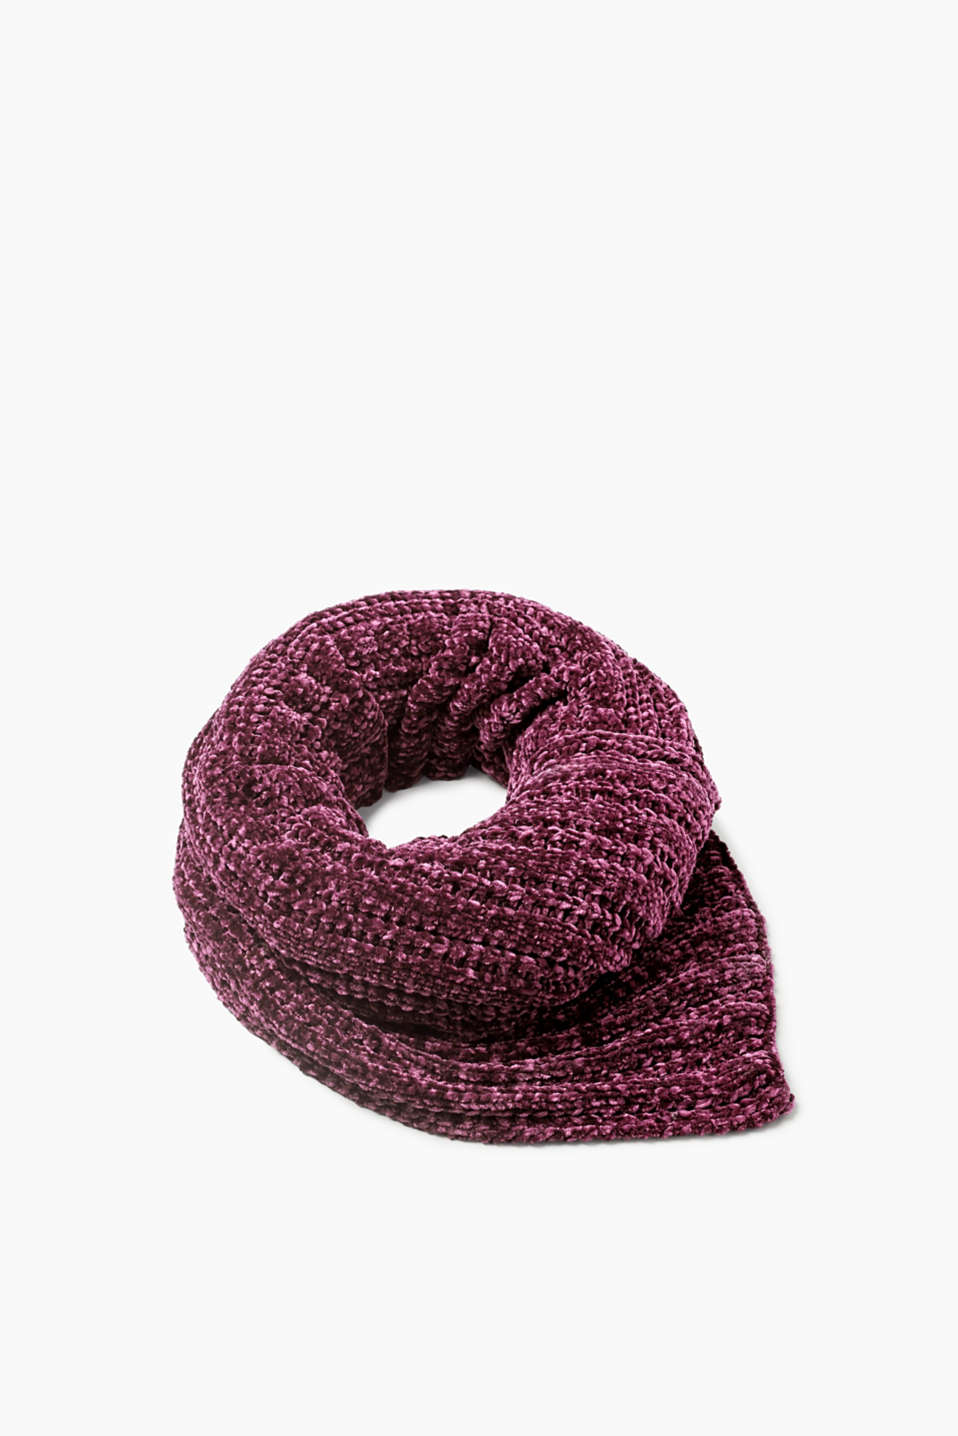 For your cool vintage style: chenille is back!